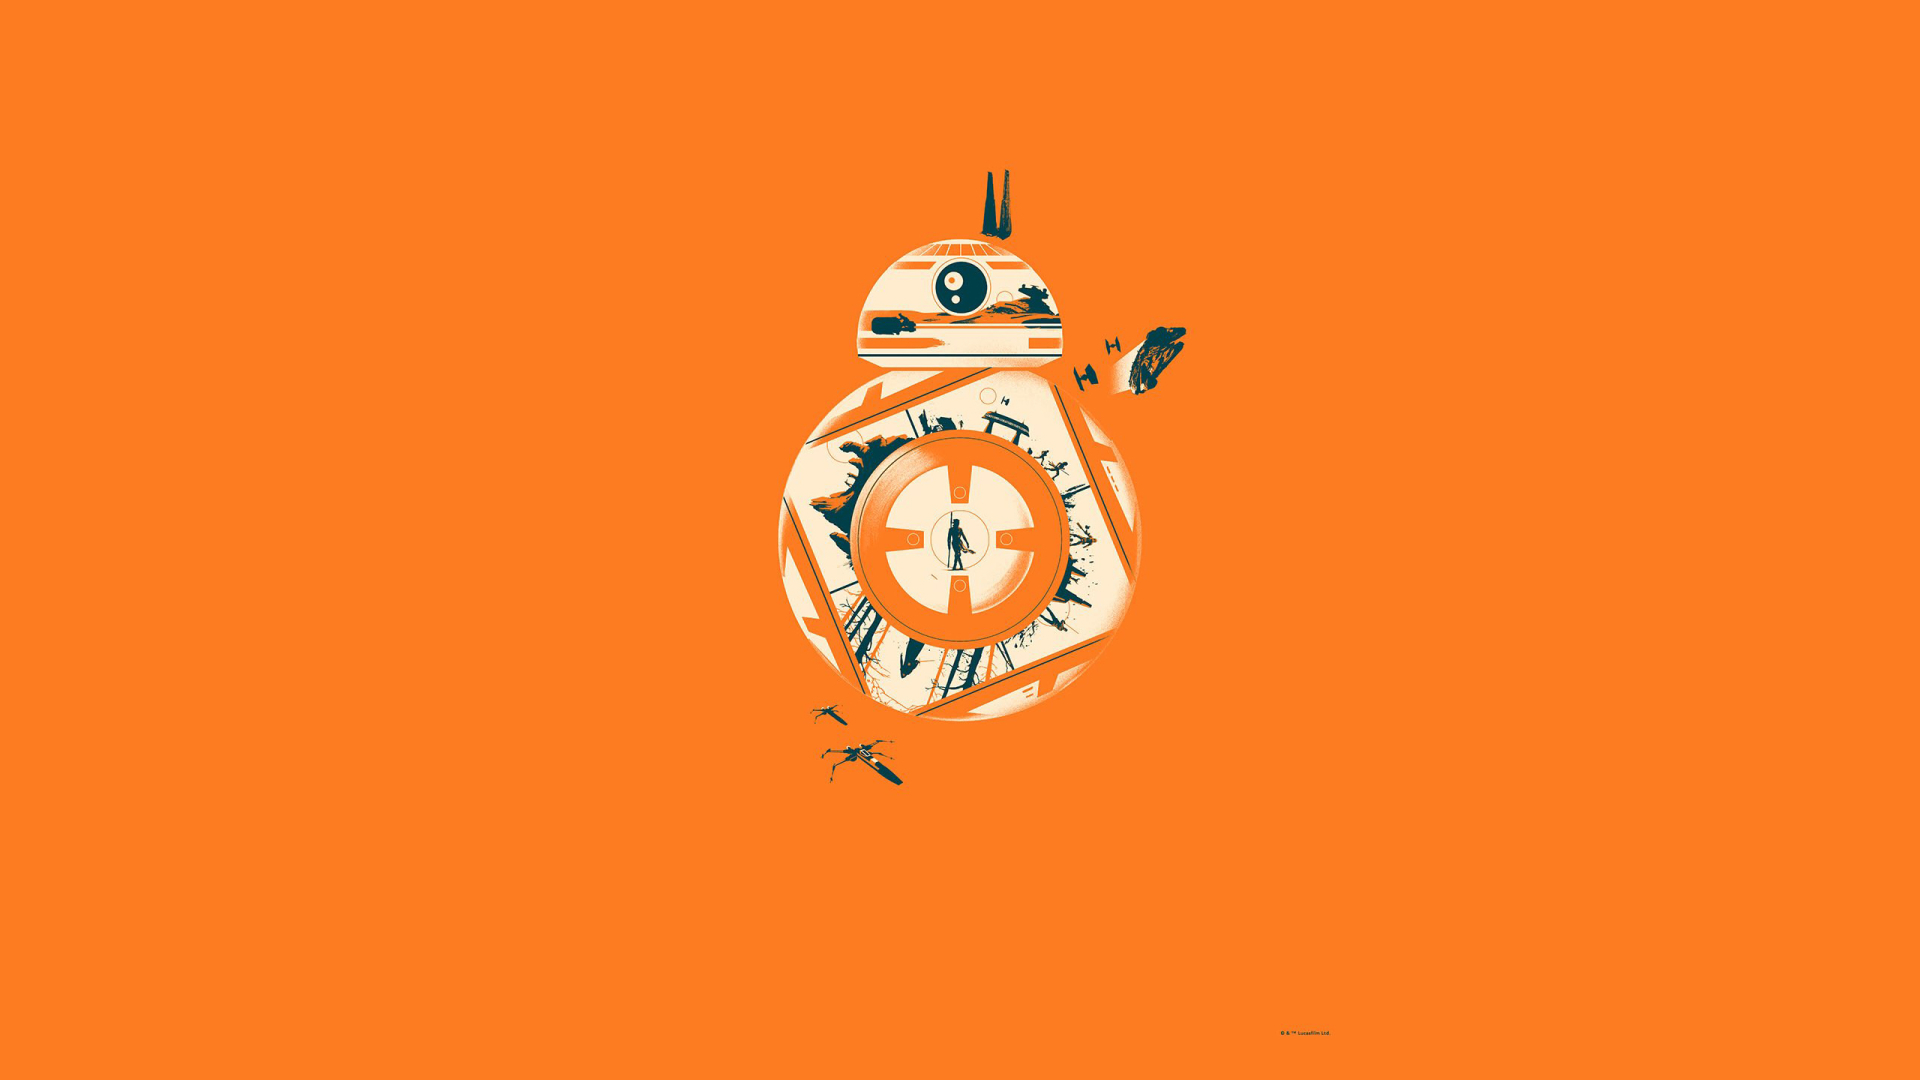 1920x1080 Bb 8 Star Wars 1080p Laptop Full Hd Wallpaper Hd Minimalist 4k Wallpapers Images Photos And Background